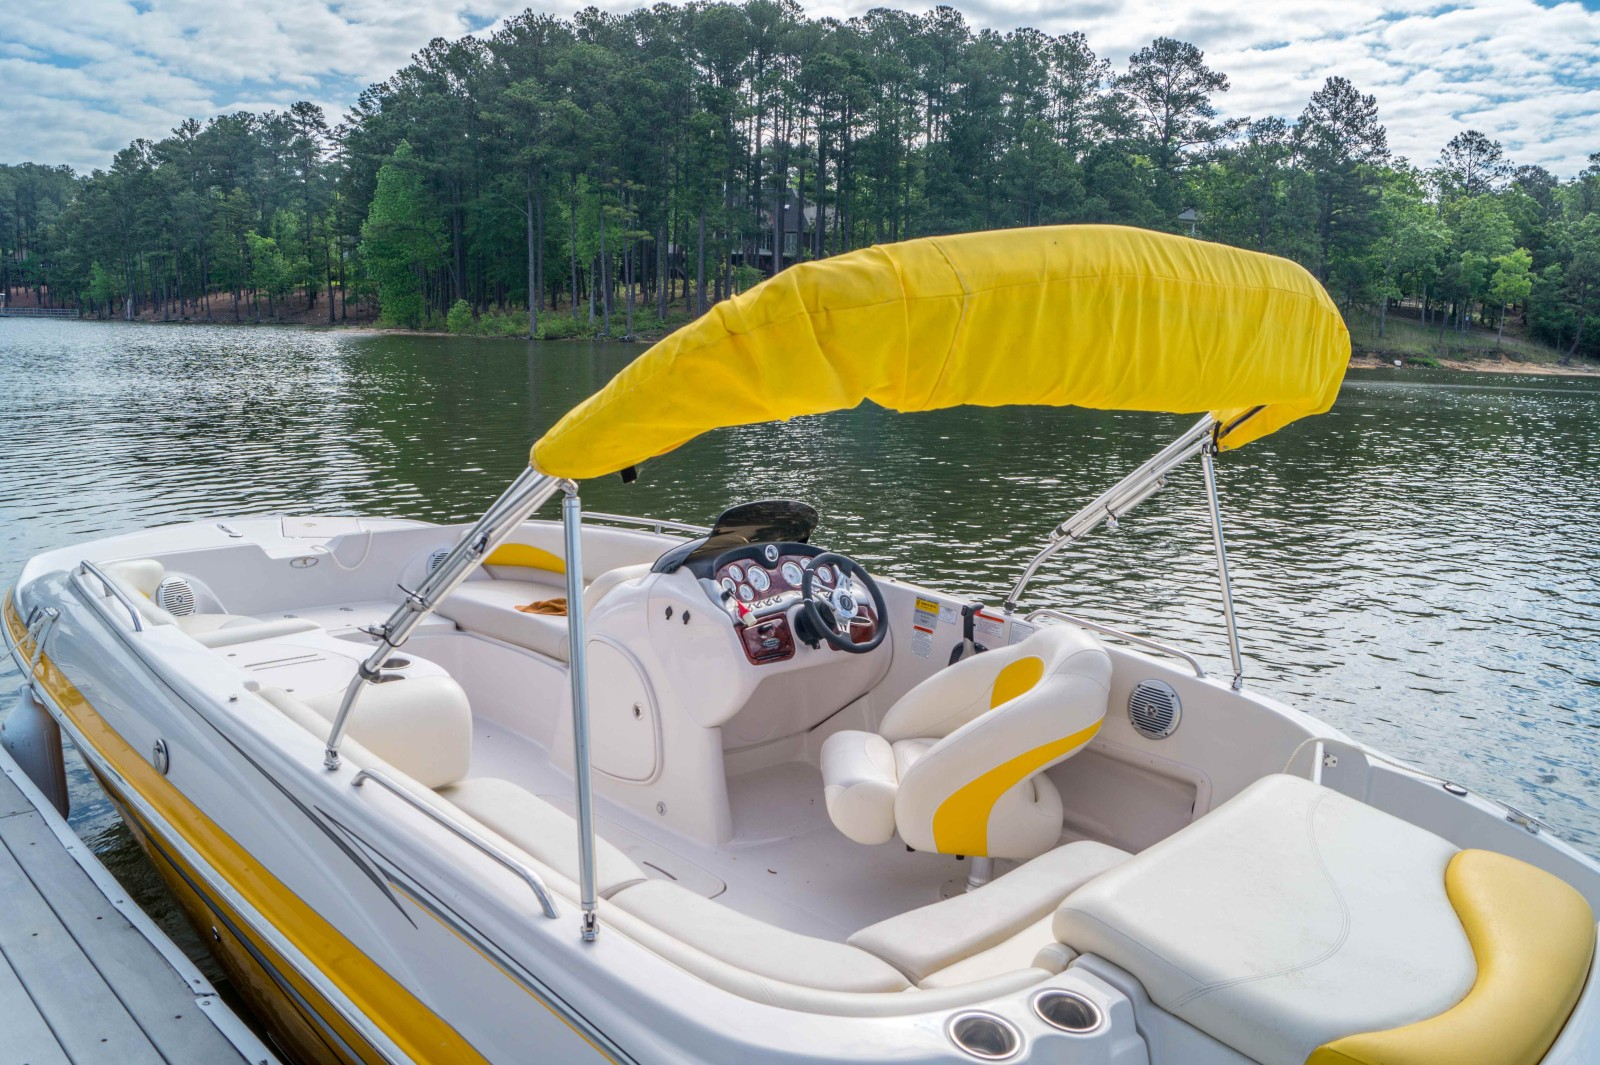 Deck Boat Rental Weekends (Fri-Sun) - Savannah Lakes Marina